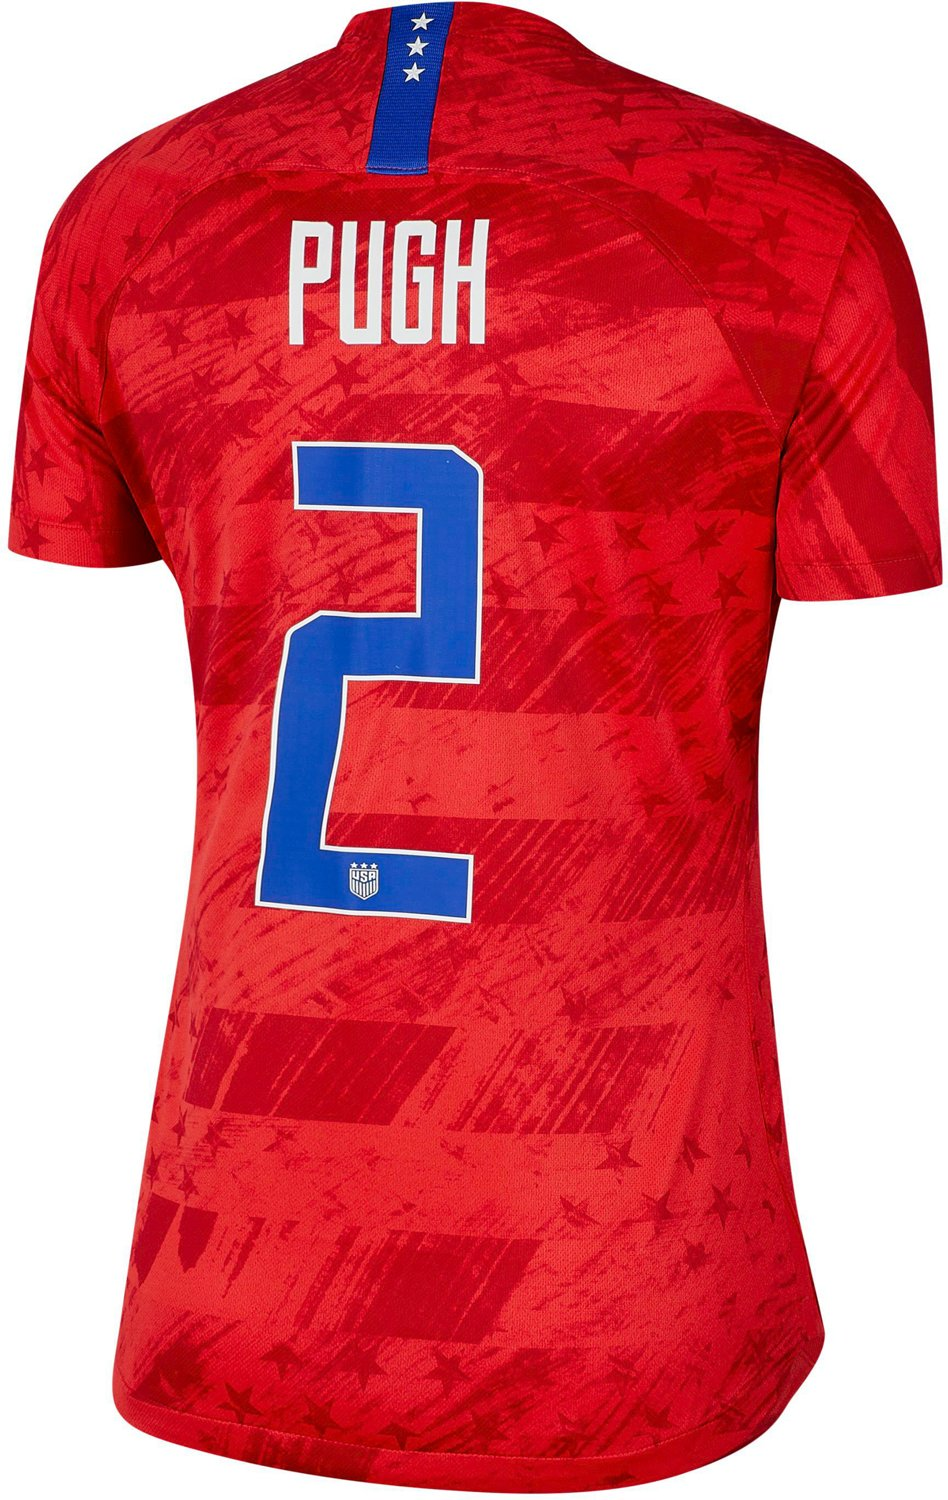 hot sale online f039d 26d18 Nike Women's USA Pugh Away Soccer Jersey